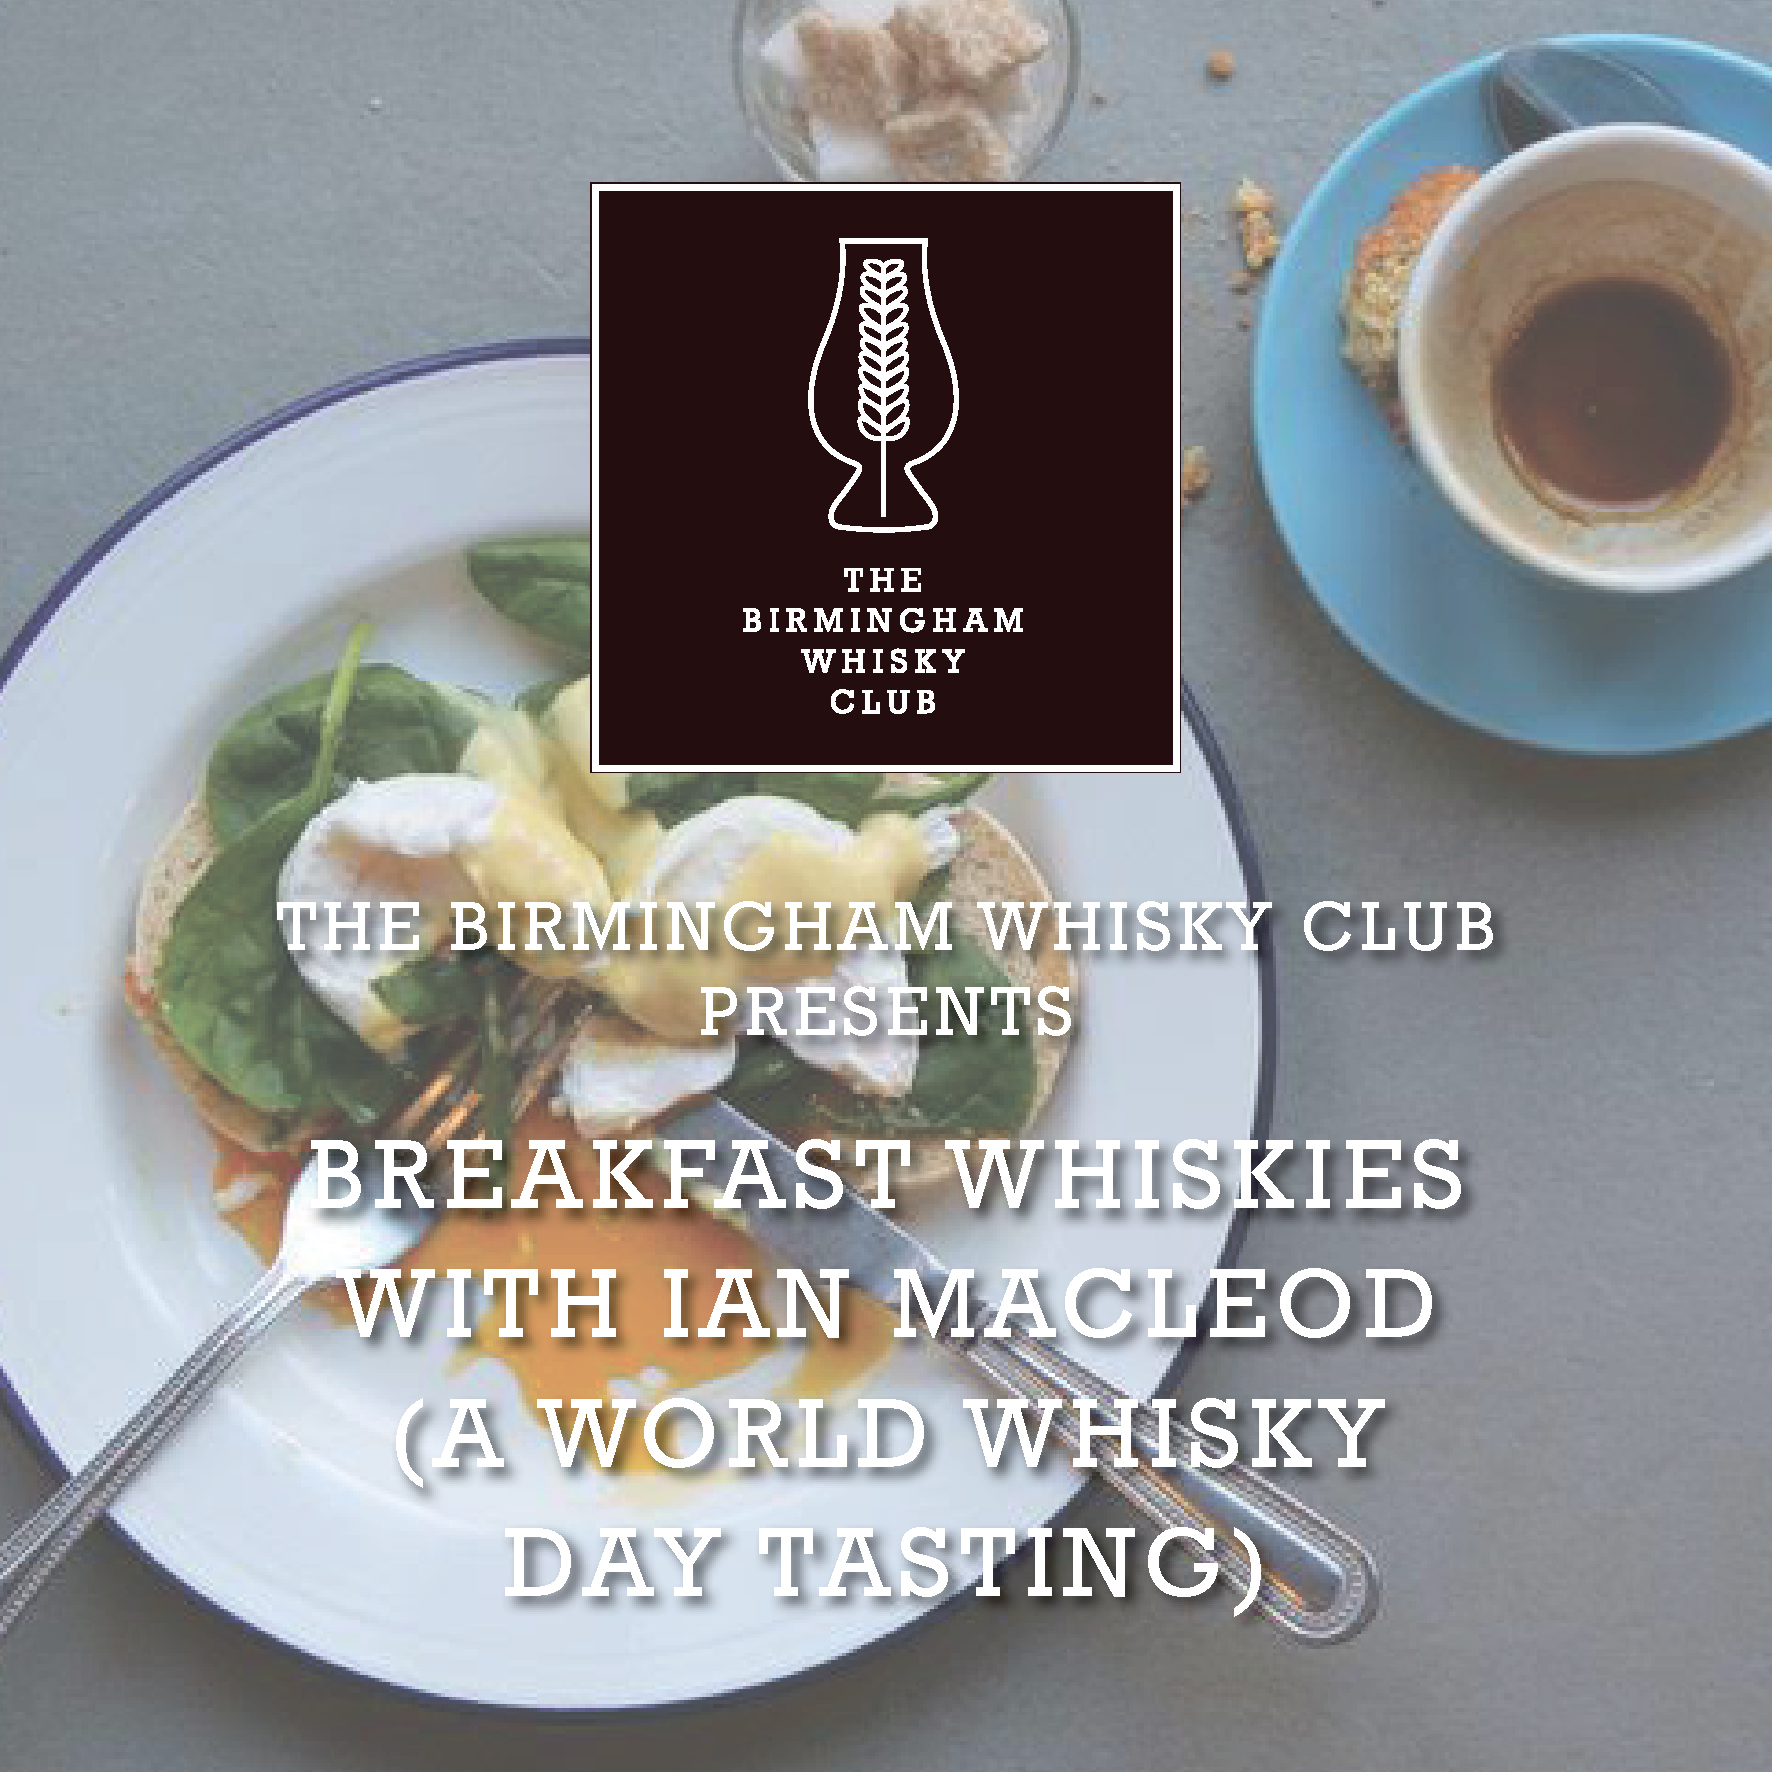 The Birmingham Whisky Club & The Plough Present :: Breakfast Whiskies With Ian Macleod (A World Whisky Day Event)